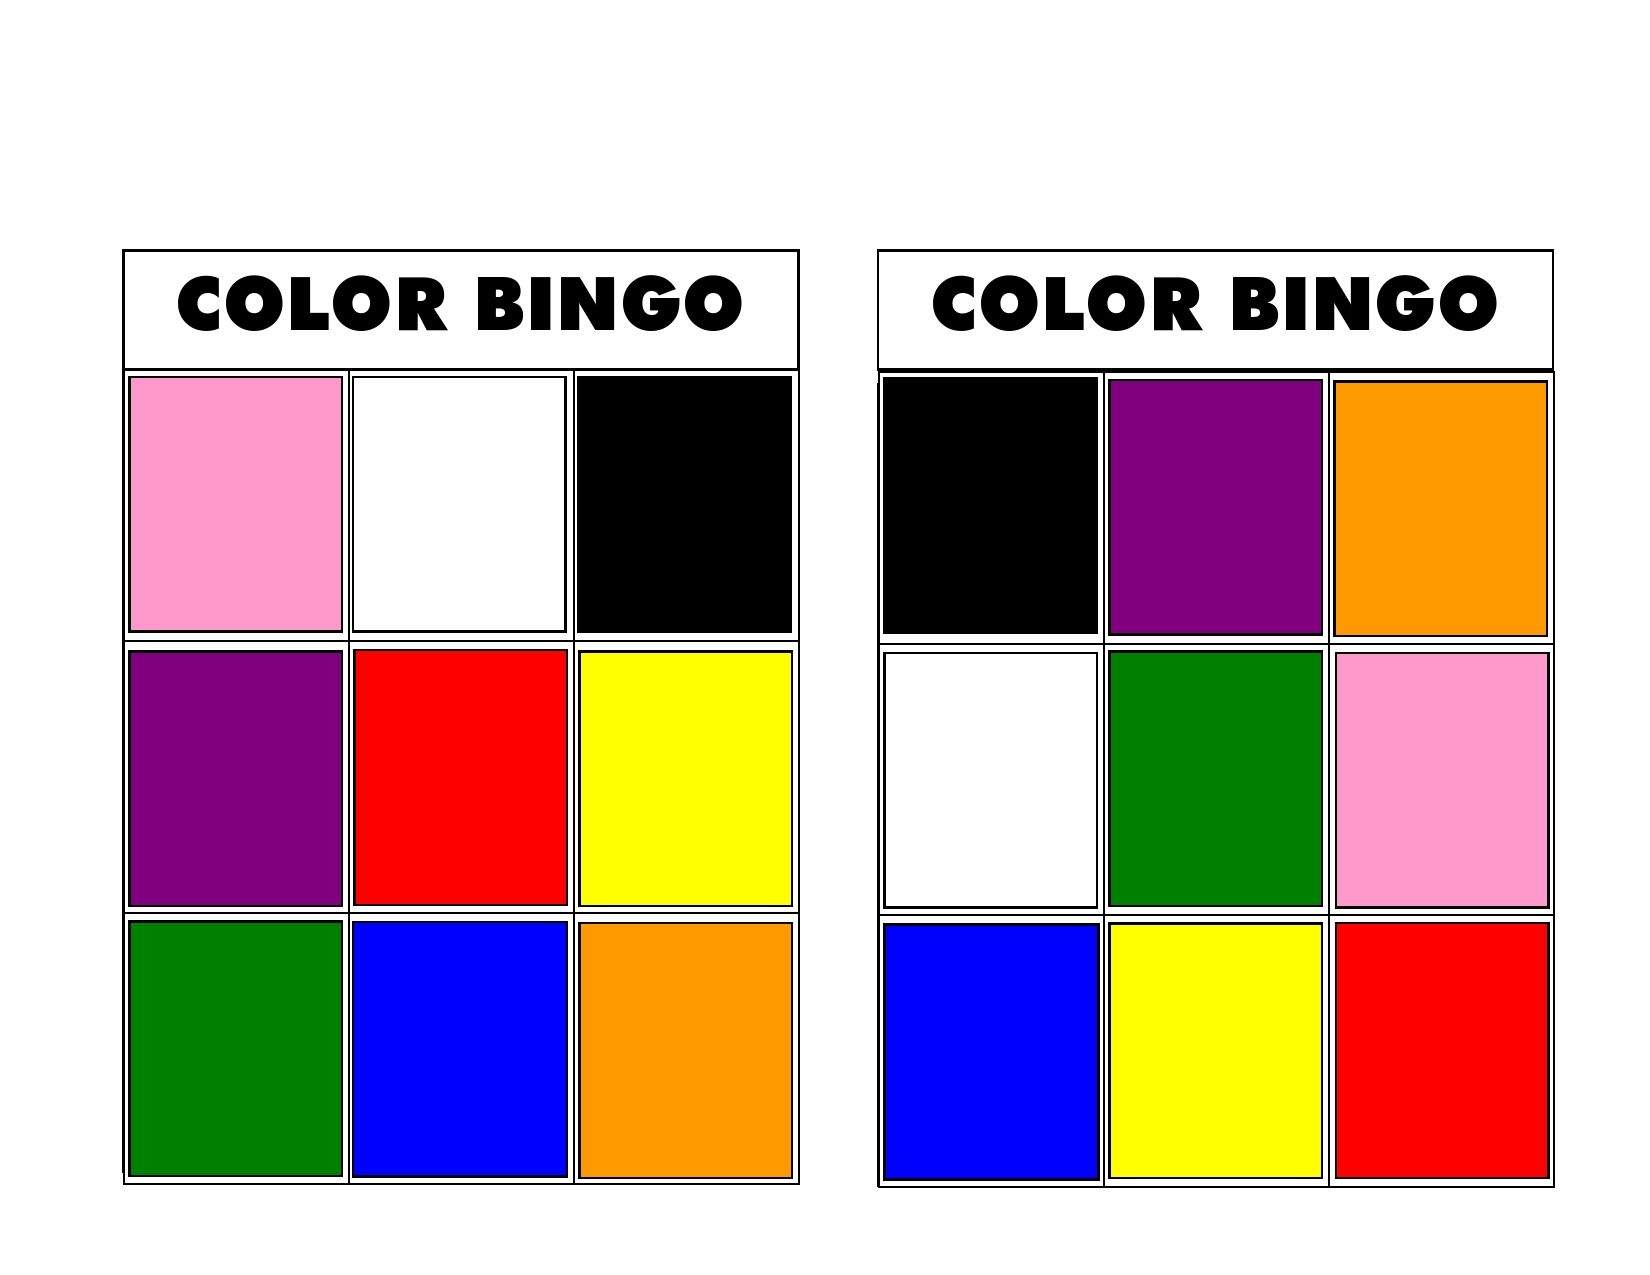 color bingo is a fun game for to practice color recognition juegos para nios